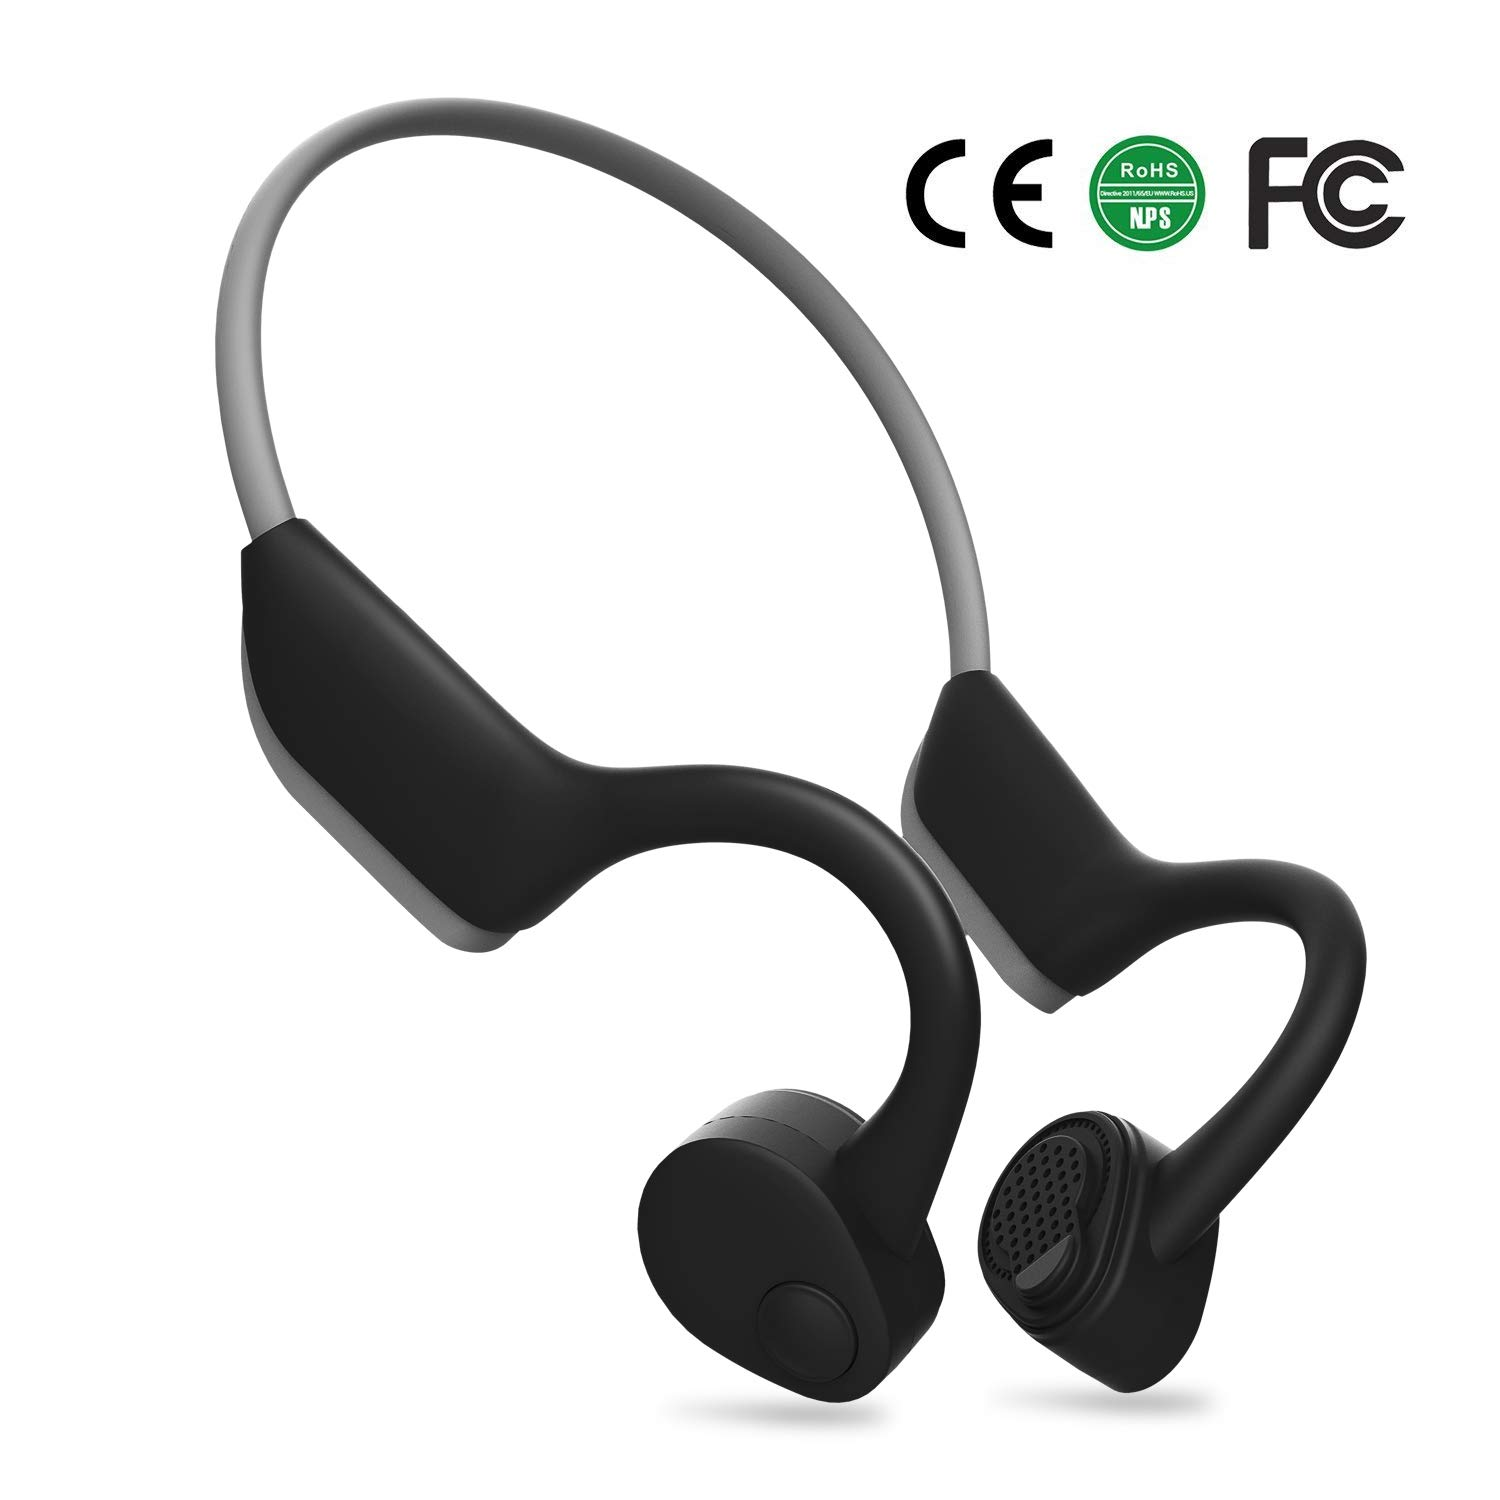 WGP Open Ear Wireless Bone Conduction Headphones, Bluetooth 5.0 Free Ears Lightweight Sports Headsets for Jogging Running Driving Cycling Sweatproof Earsets Grey